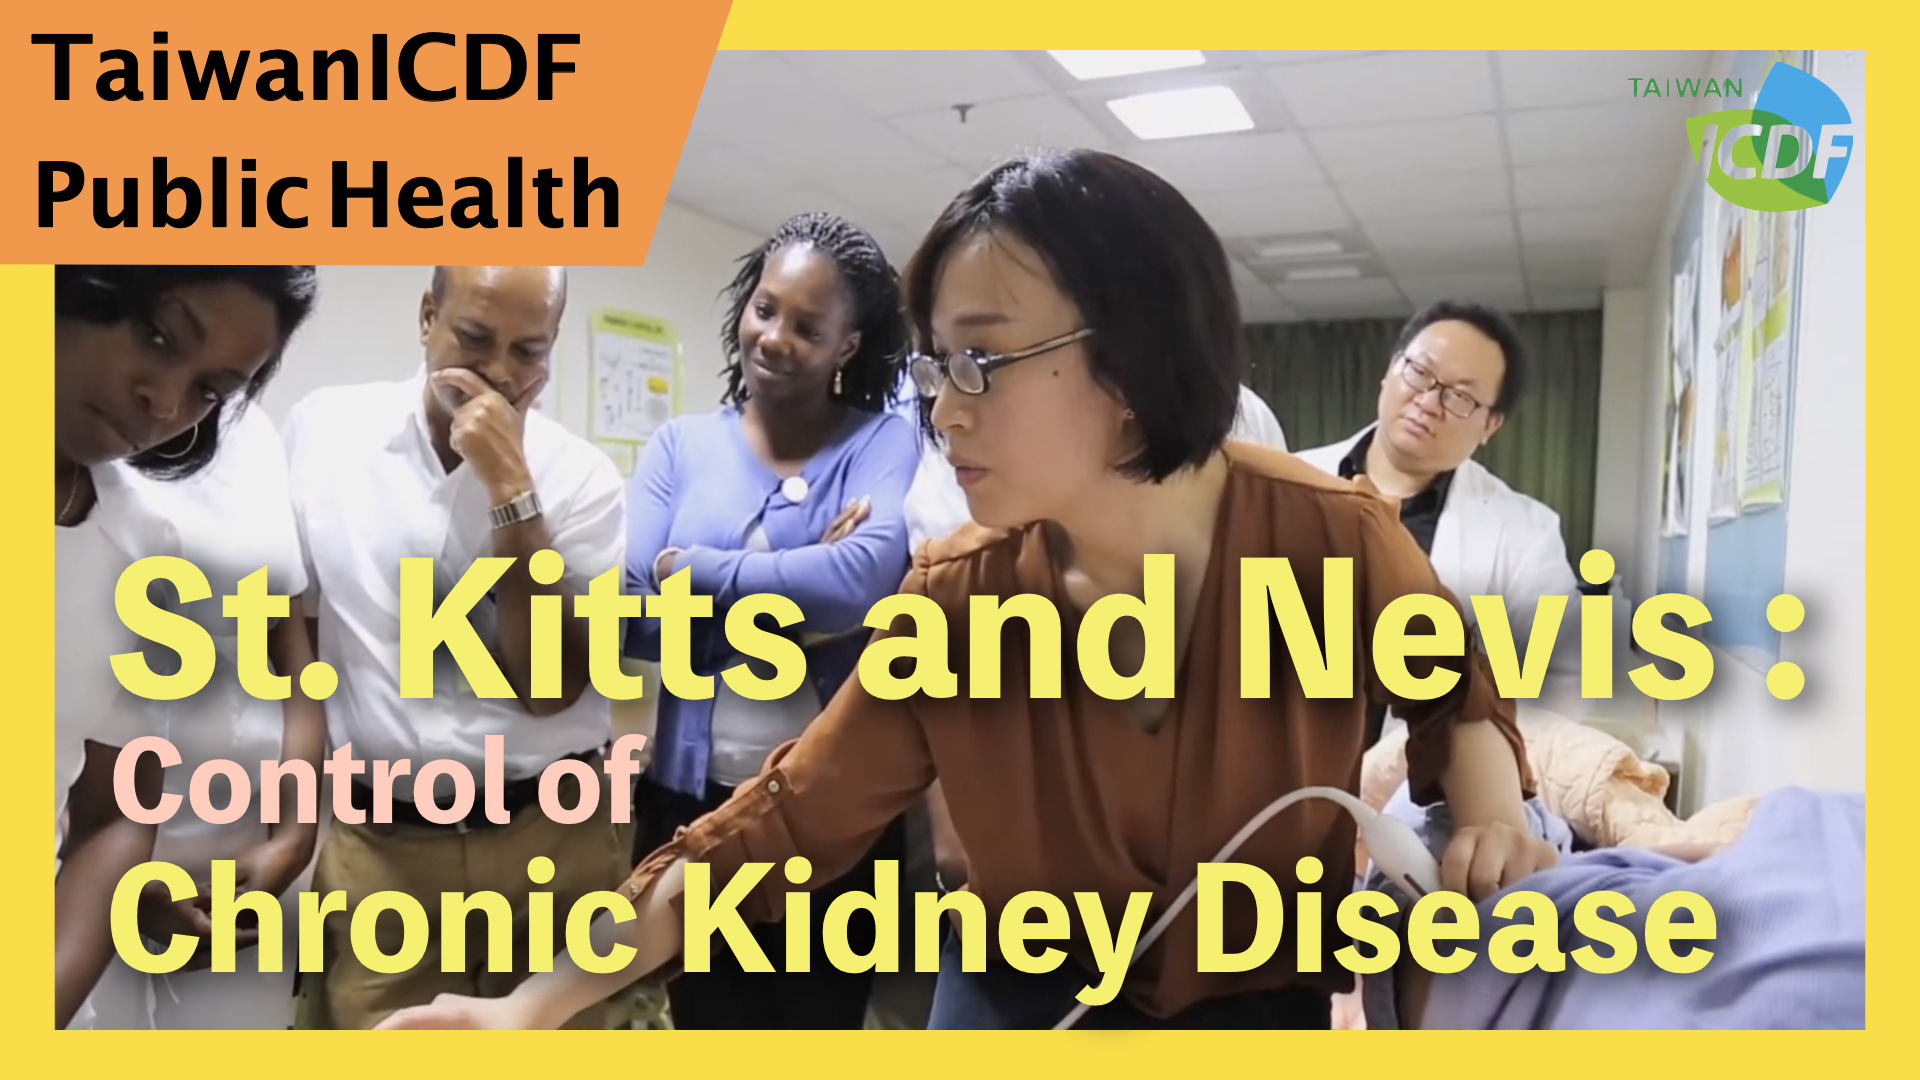 Capacity Building Project for the Prevention and Control of Chronic Kidney Disease in St. Kitts and Nevis